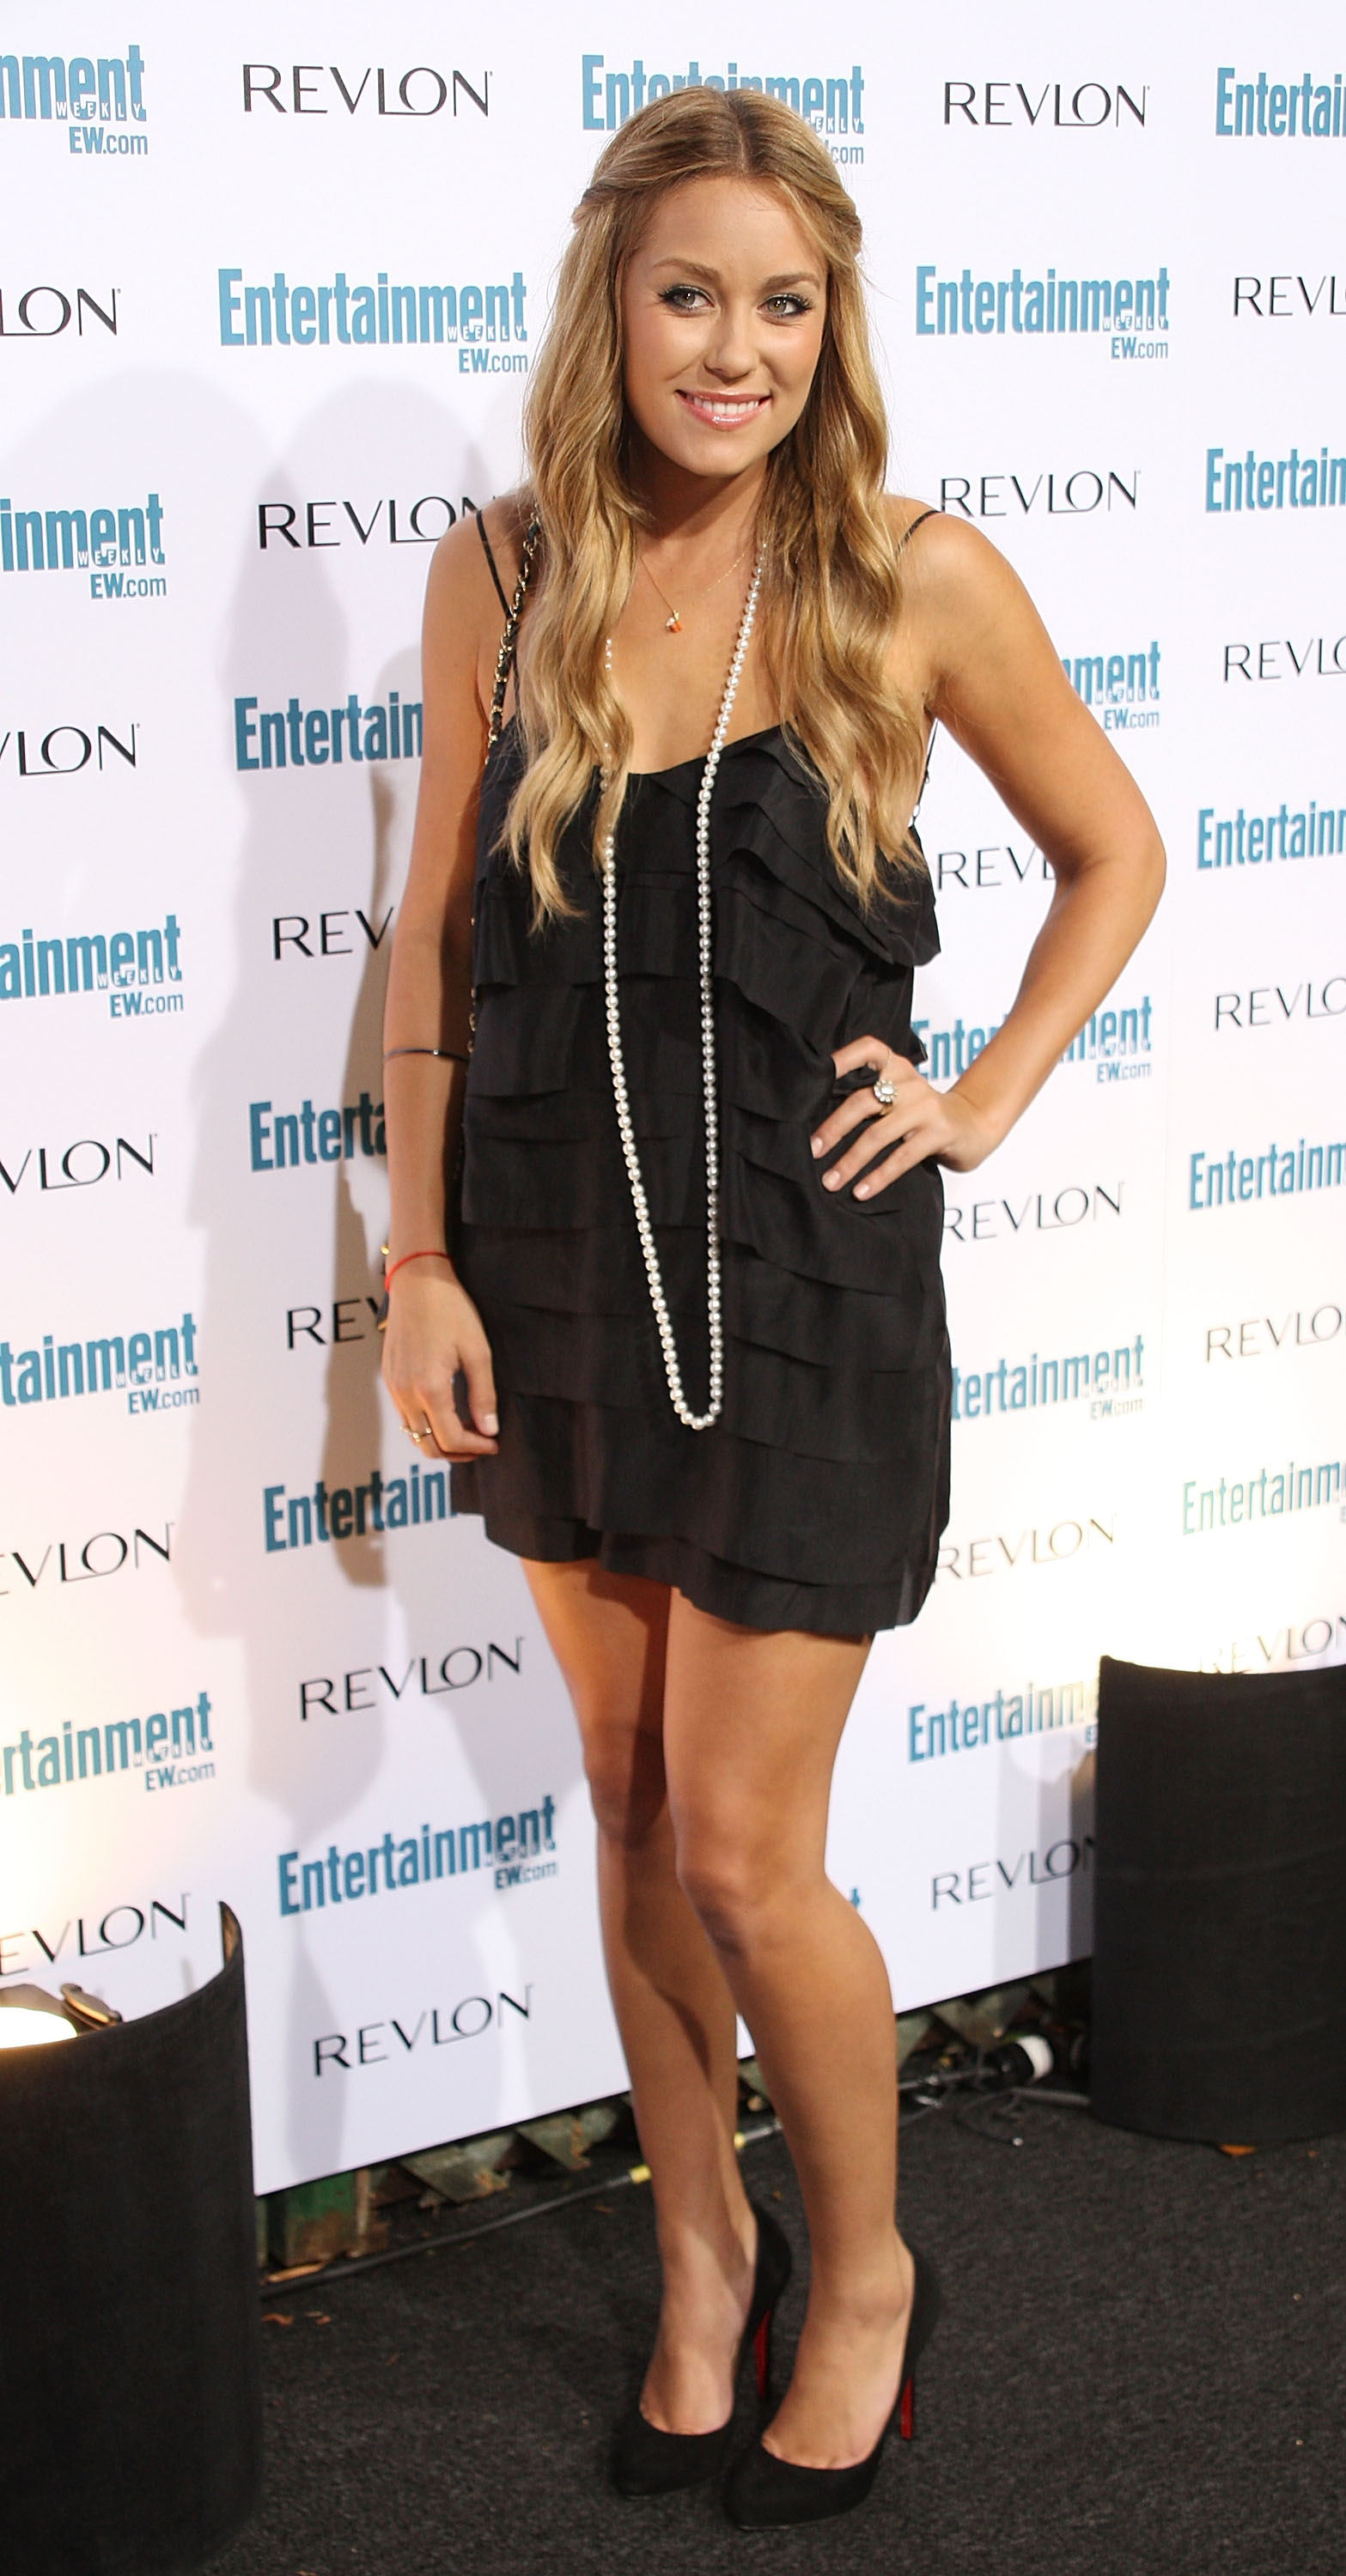 91256_Celebutopia-Lauren_Conrad-Entertainment_Weekly3s_Sixth_Annual_Pre-Emmy_Celebration_party-05_122_567lo.jpg